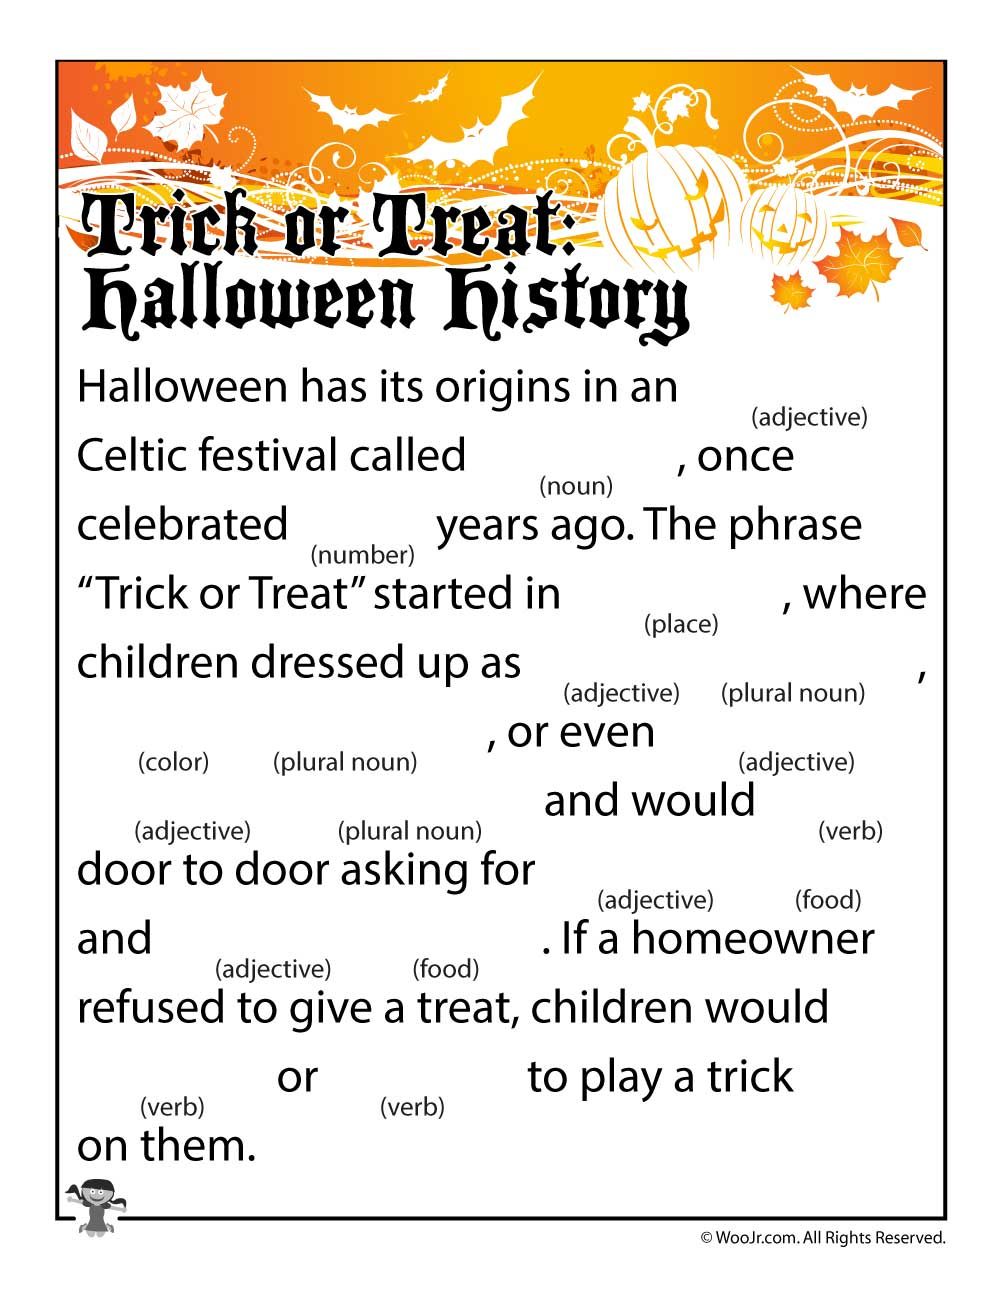 Trick or Treat Halloween History Mad Lib - Woo! Jr. Kids Activities